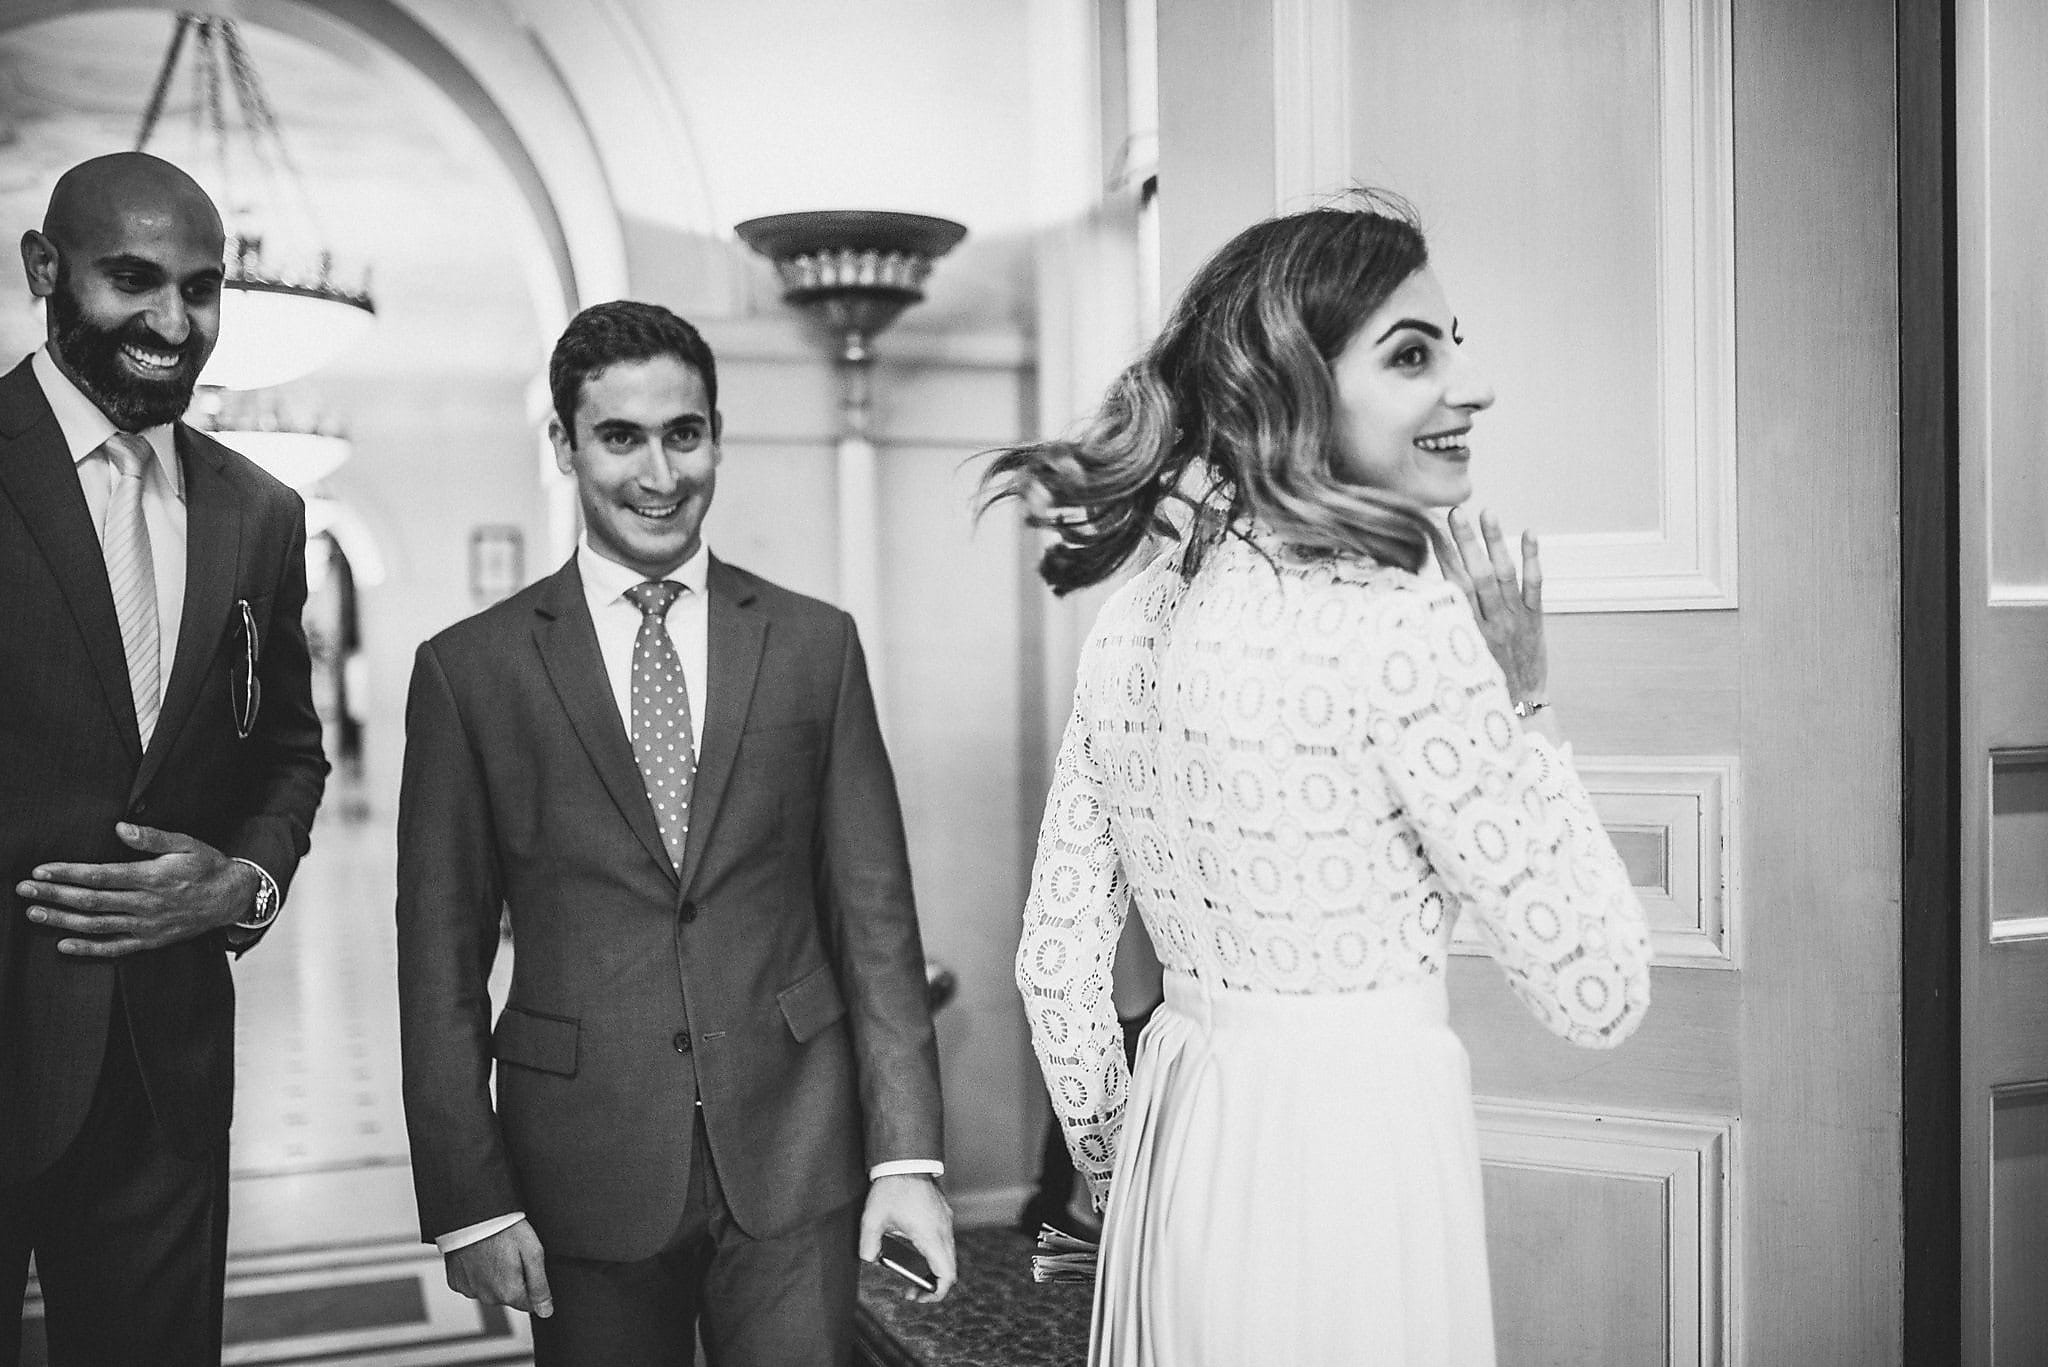 Bride turns to greet guests at her wedding at The Lanesborough